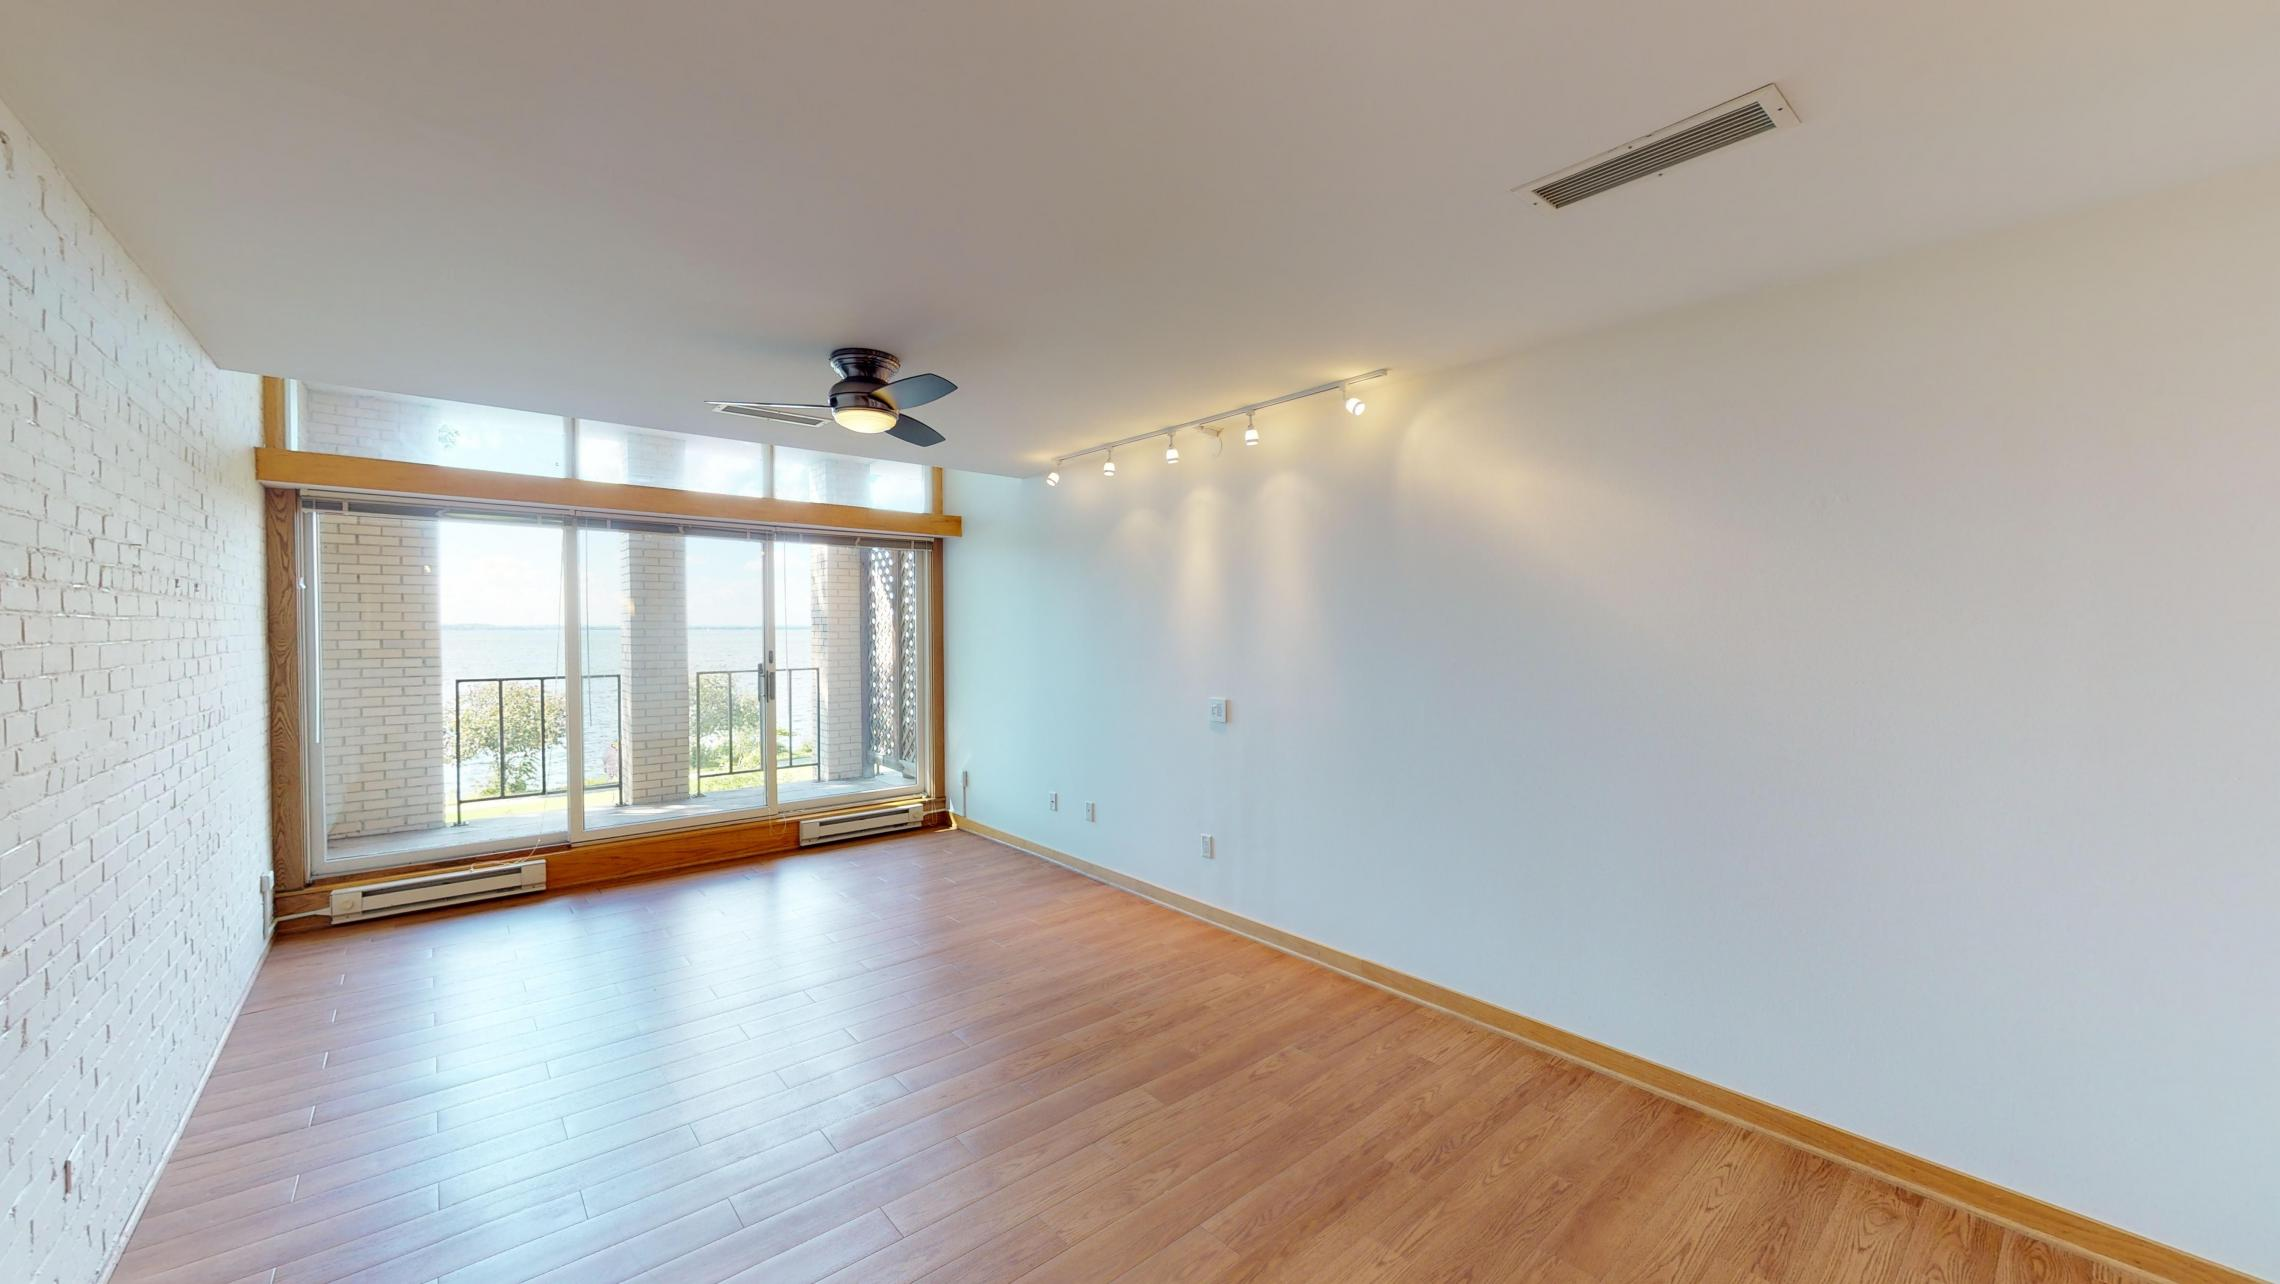 ULI-Lincoln-School-Apartment-205-One-Bedroom-Den-Living-Area-Historic-Apartment-Lake-View-Downtown-Terrace-Balcony-Home-Trails-Parks